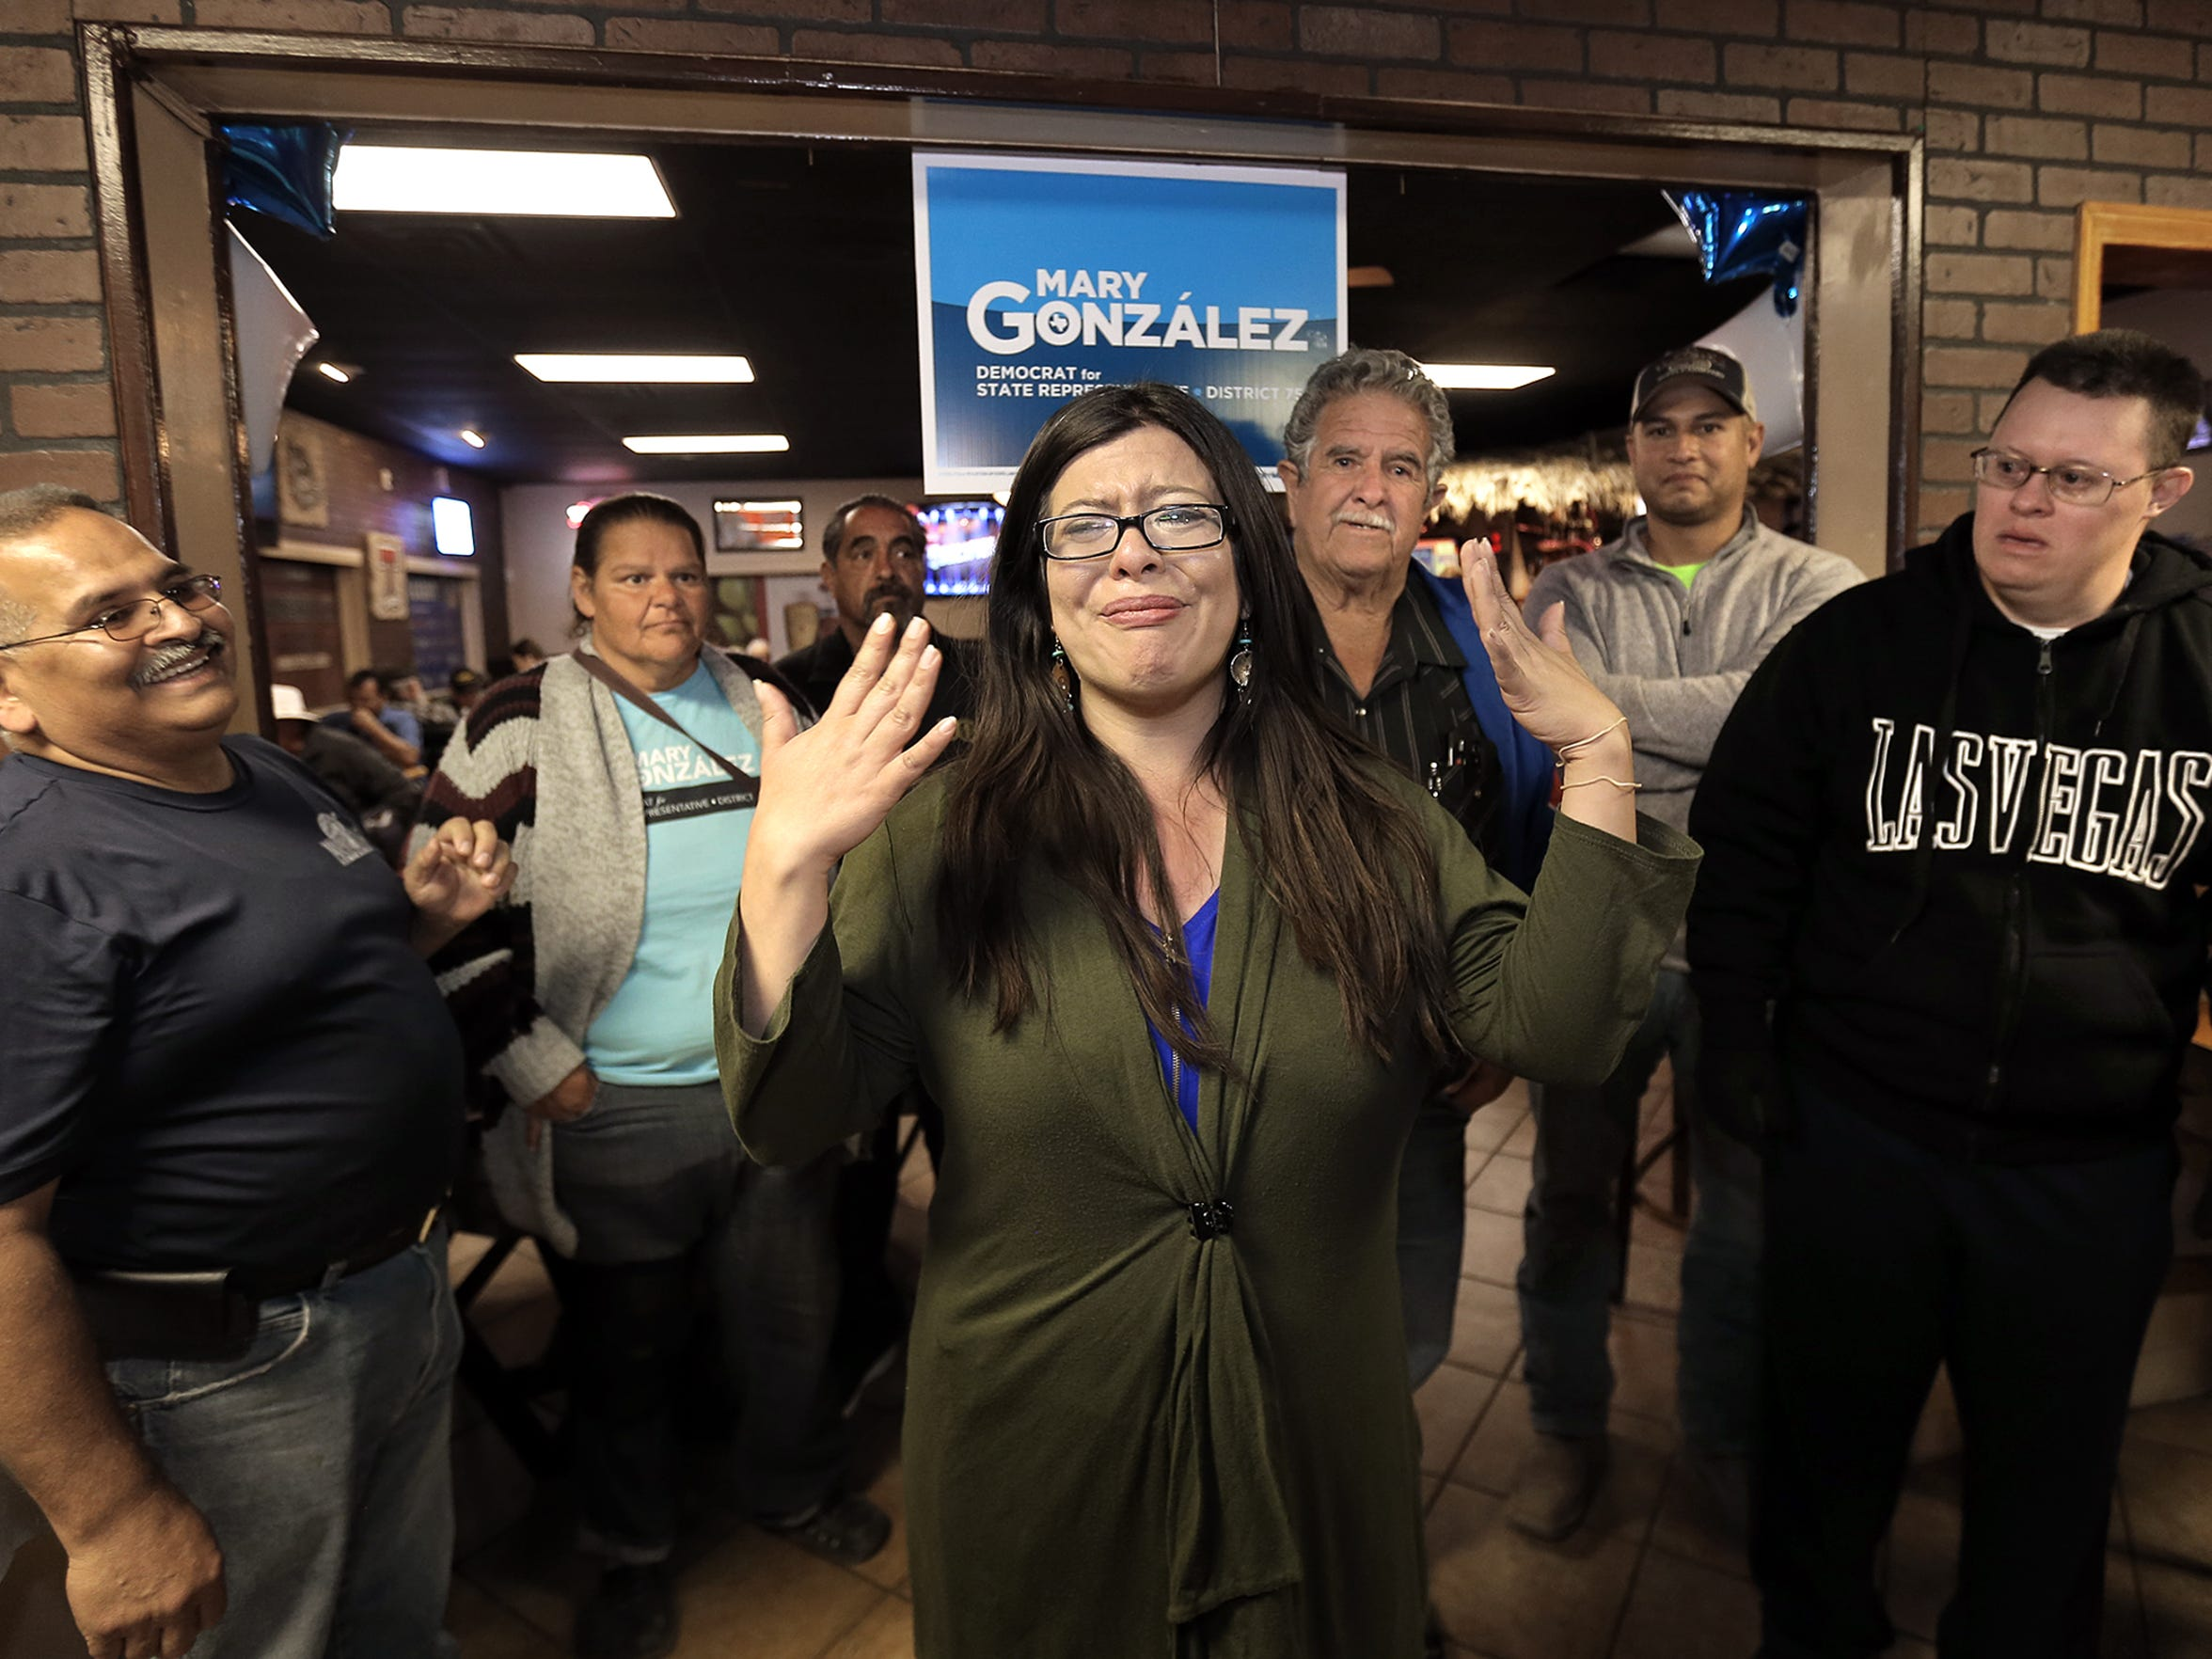 State Rep. Mary Gonzalez was overcome with emotion after supporters began cheering upon her arrival at her election night watch party at Mamacitas Restaurant in Clint Tuesday. Gonzalez was reelected to the House District 75 seat, beating MarySue Femath.